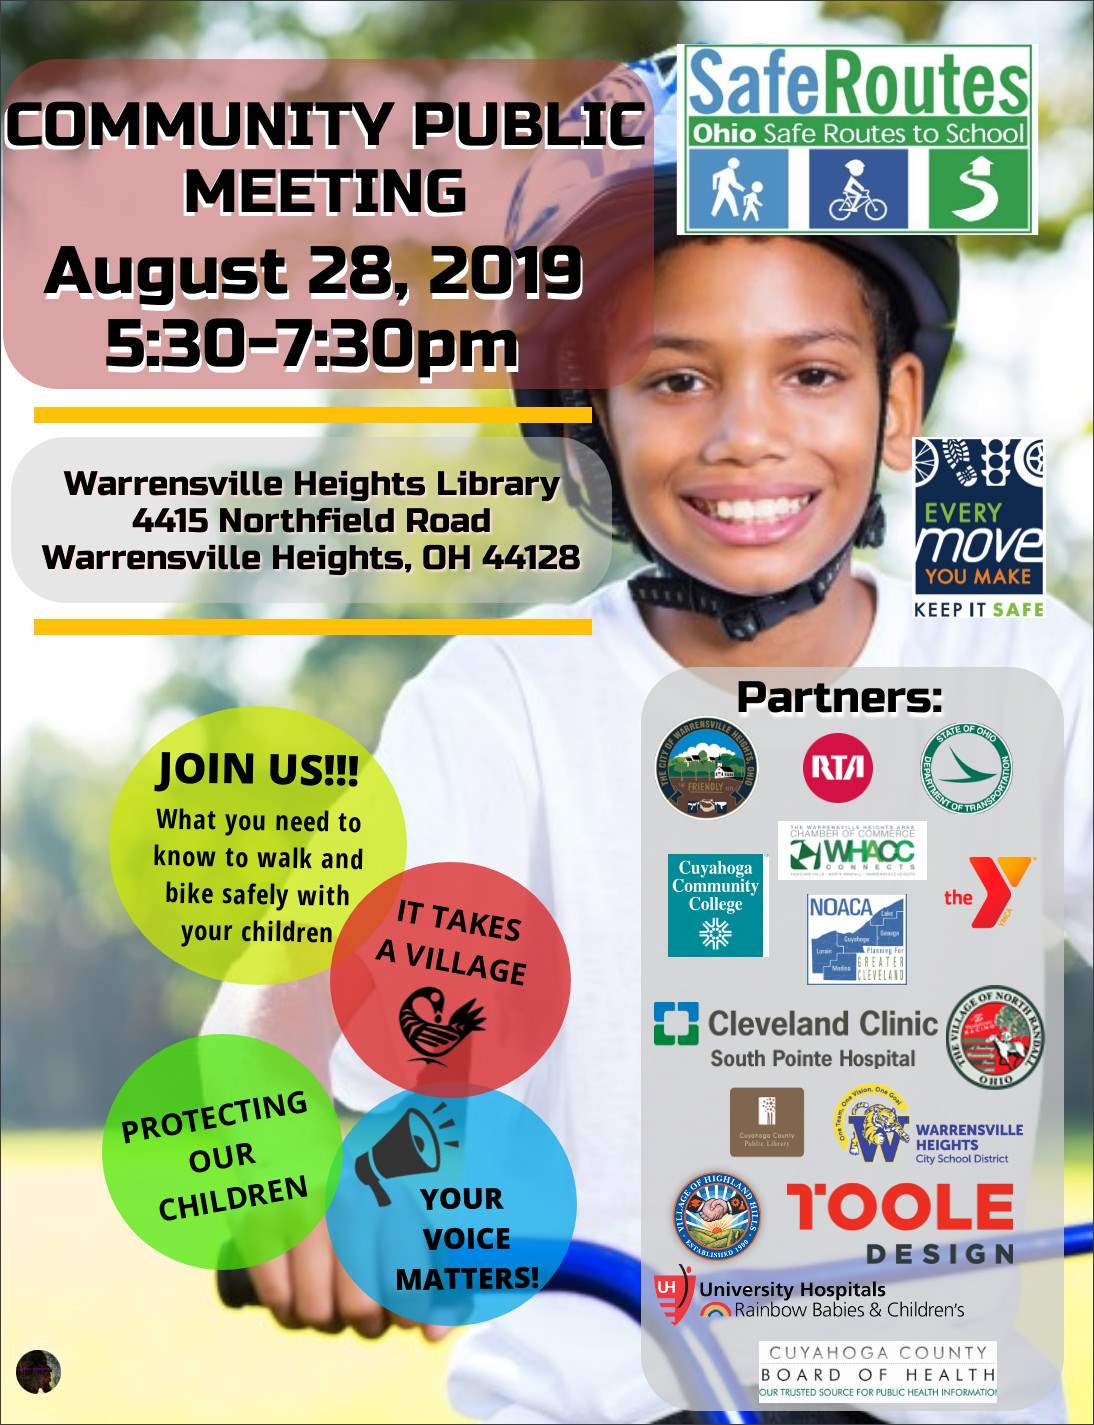 Safe Routes Meeting